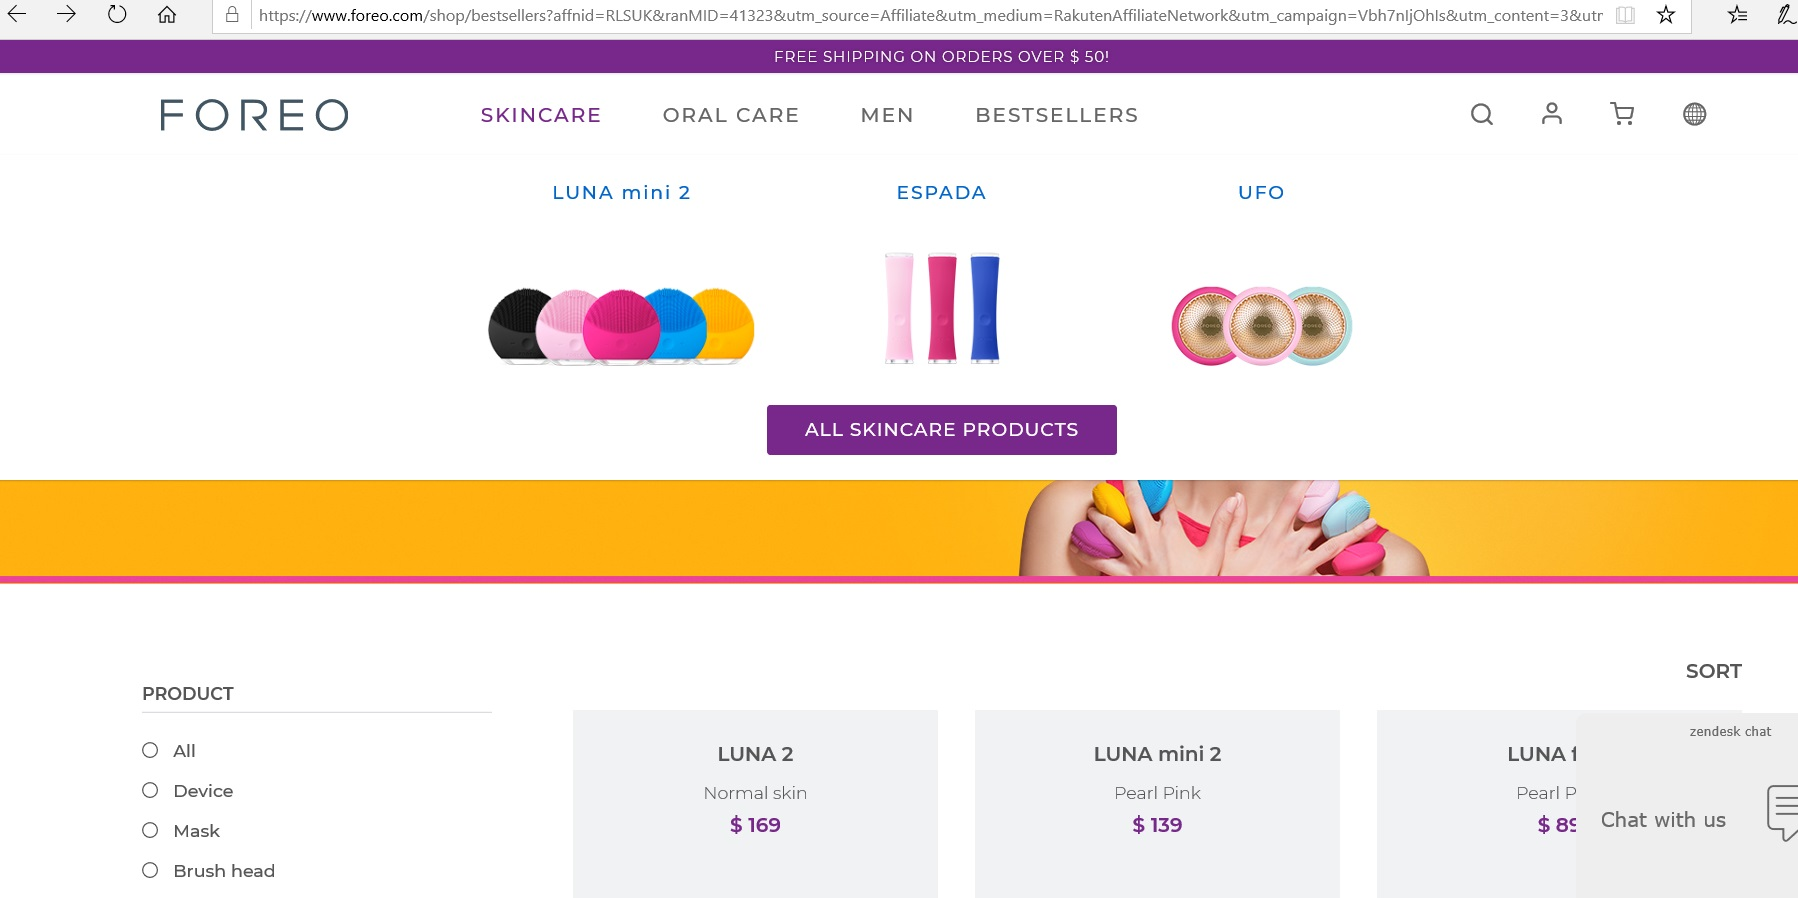 Product category dropdown for skincare products.